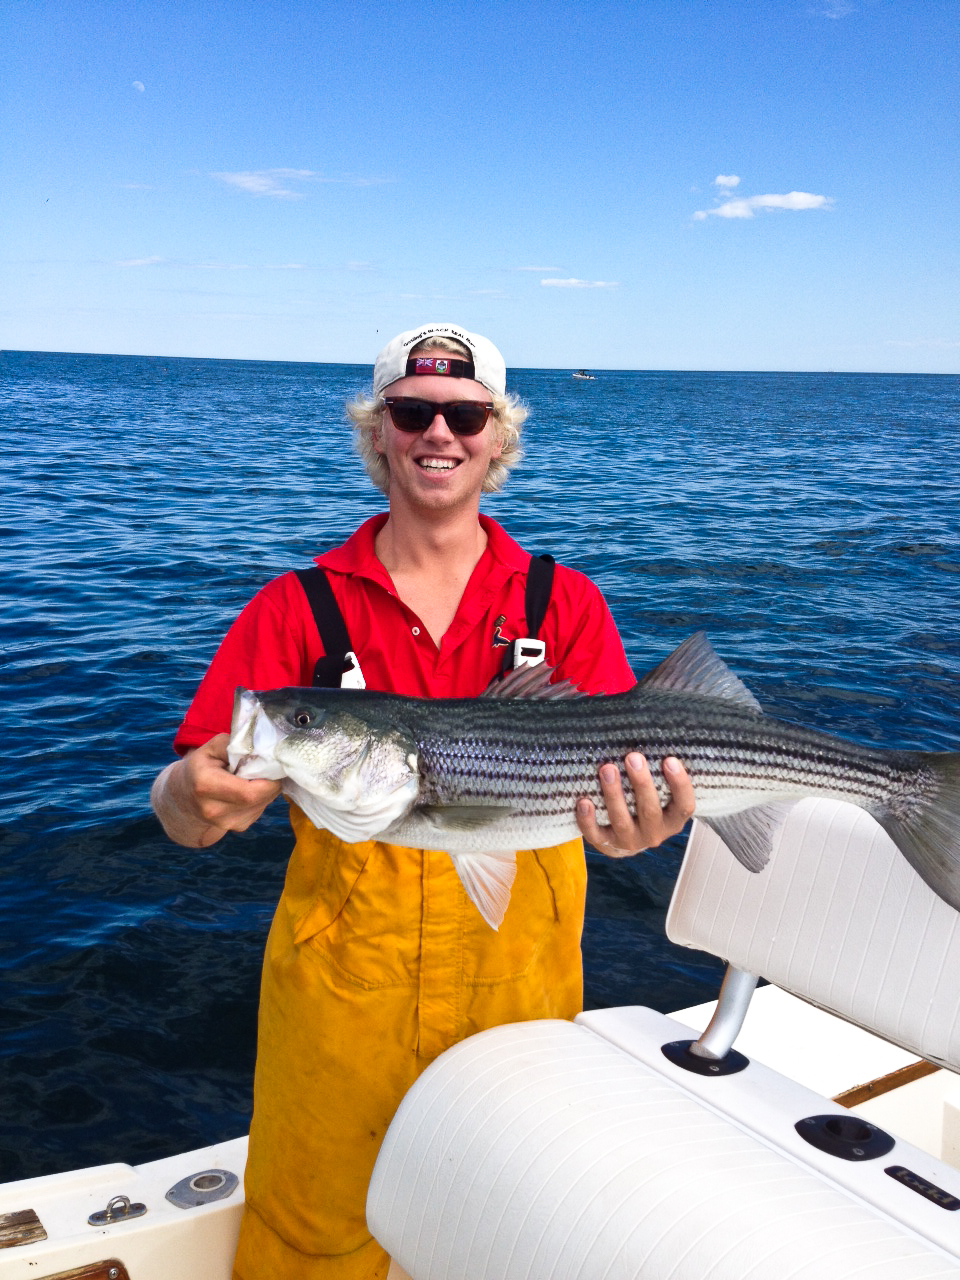 will danforth alue optics six sunglass striped bass fishing